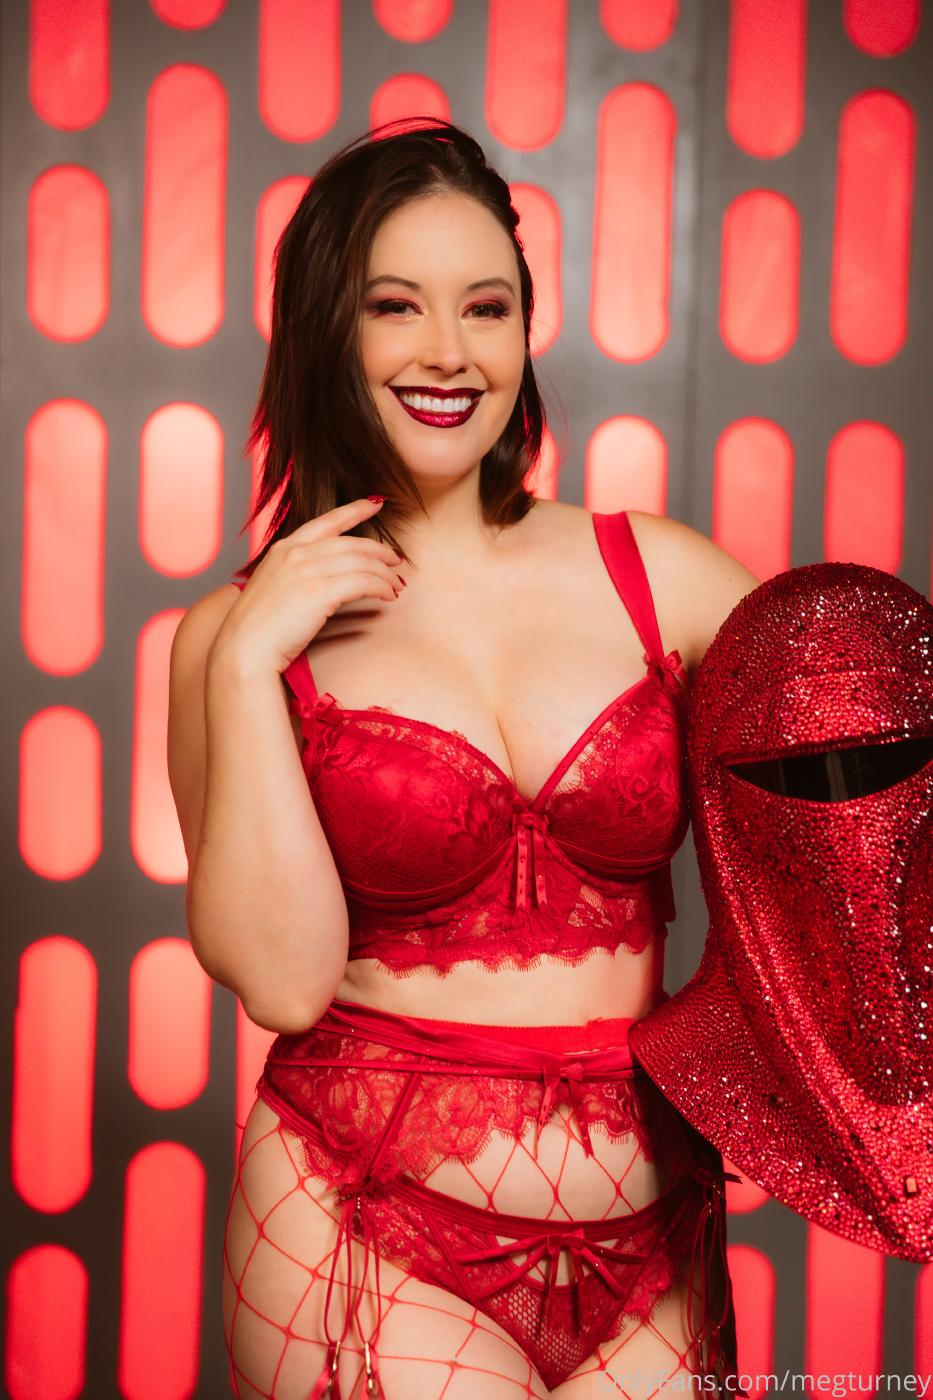 Meg Turney Imperial Guard Topless Cosplay Onlyfans Set Leaked Fqfsqk